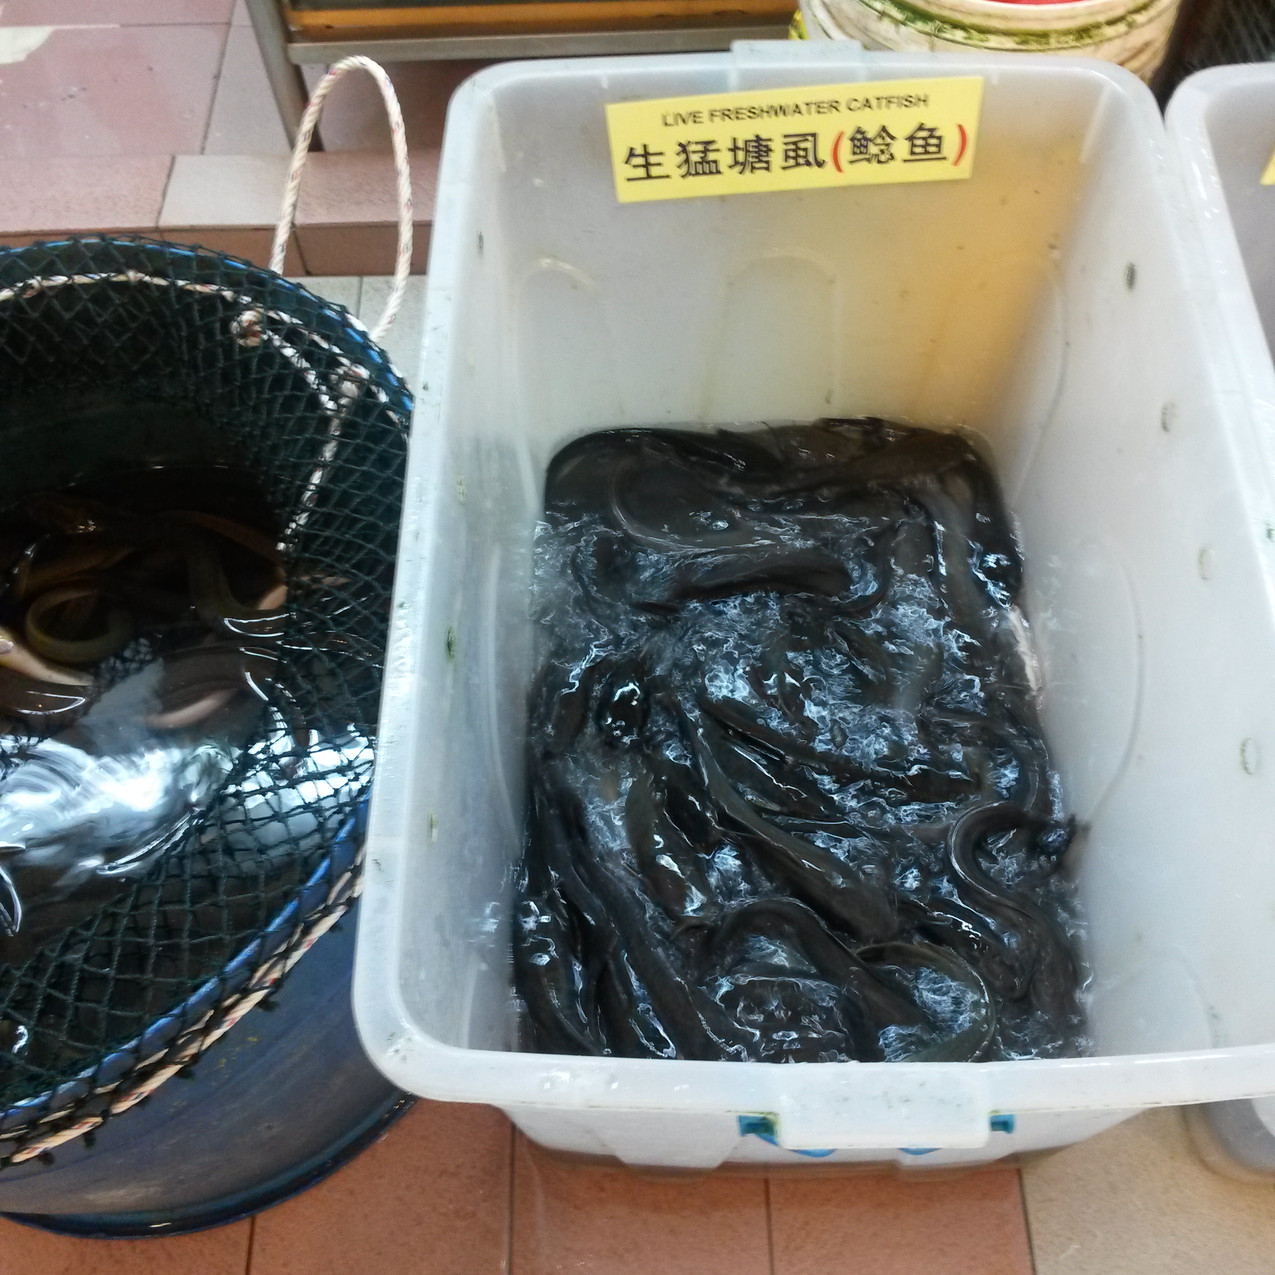 Photo 3. Live catfish sold at Chinatown market, Singapore